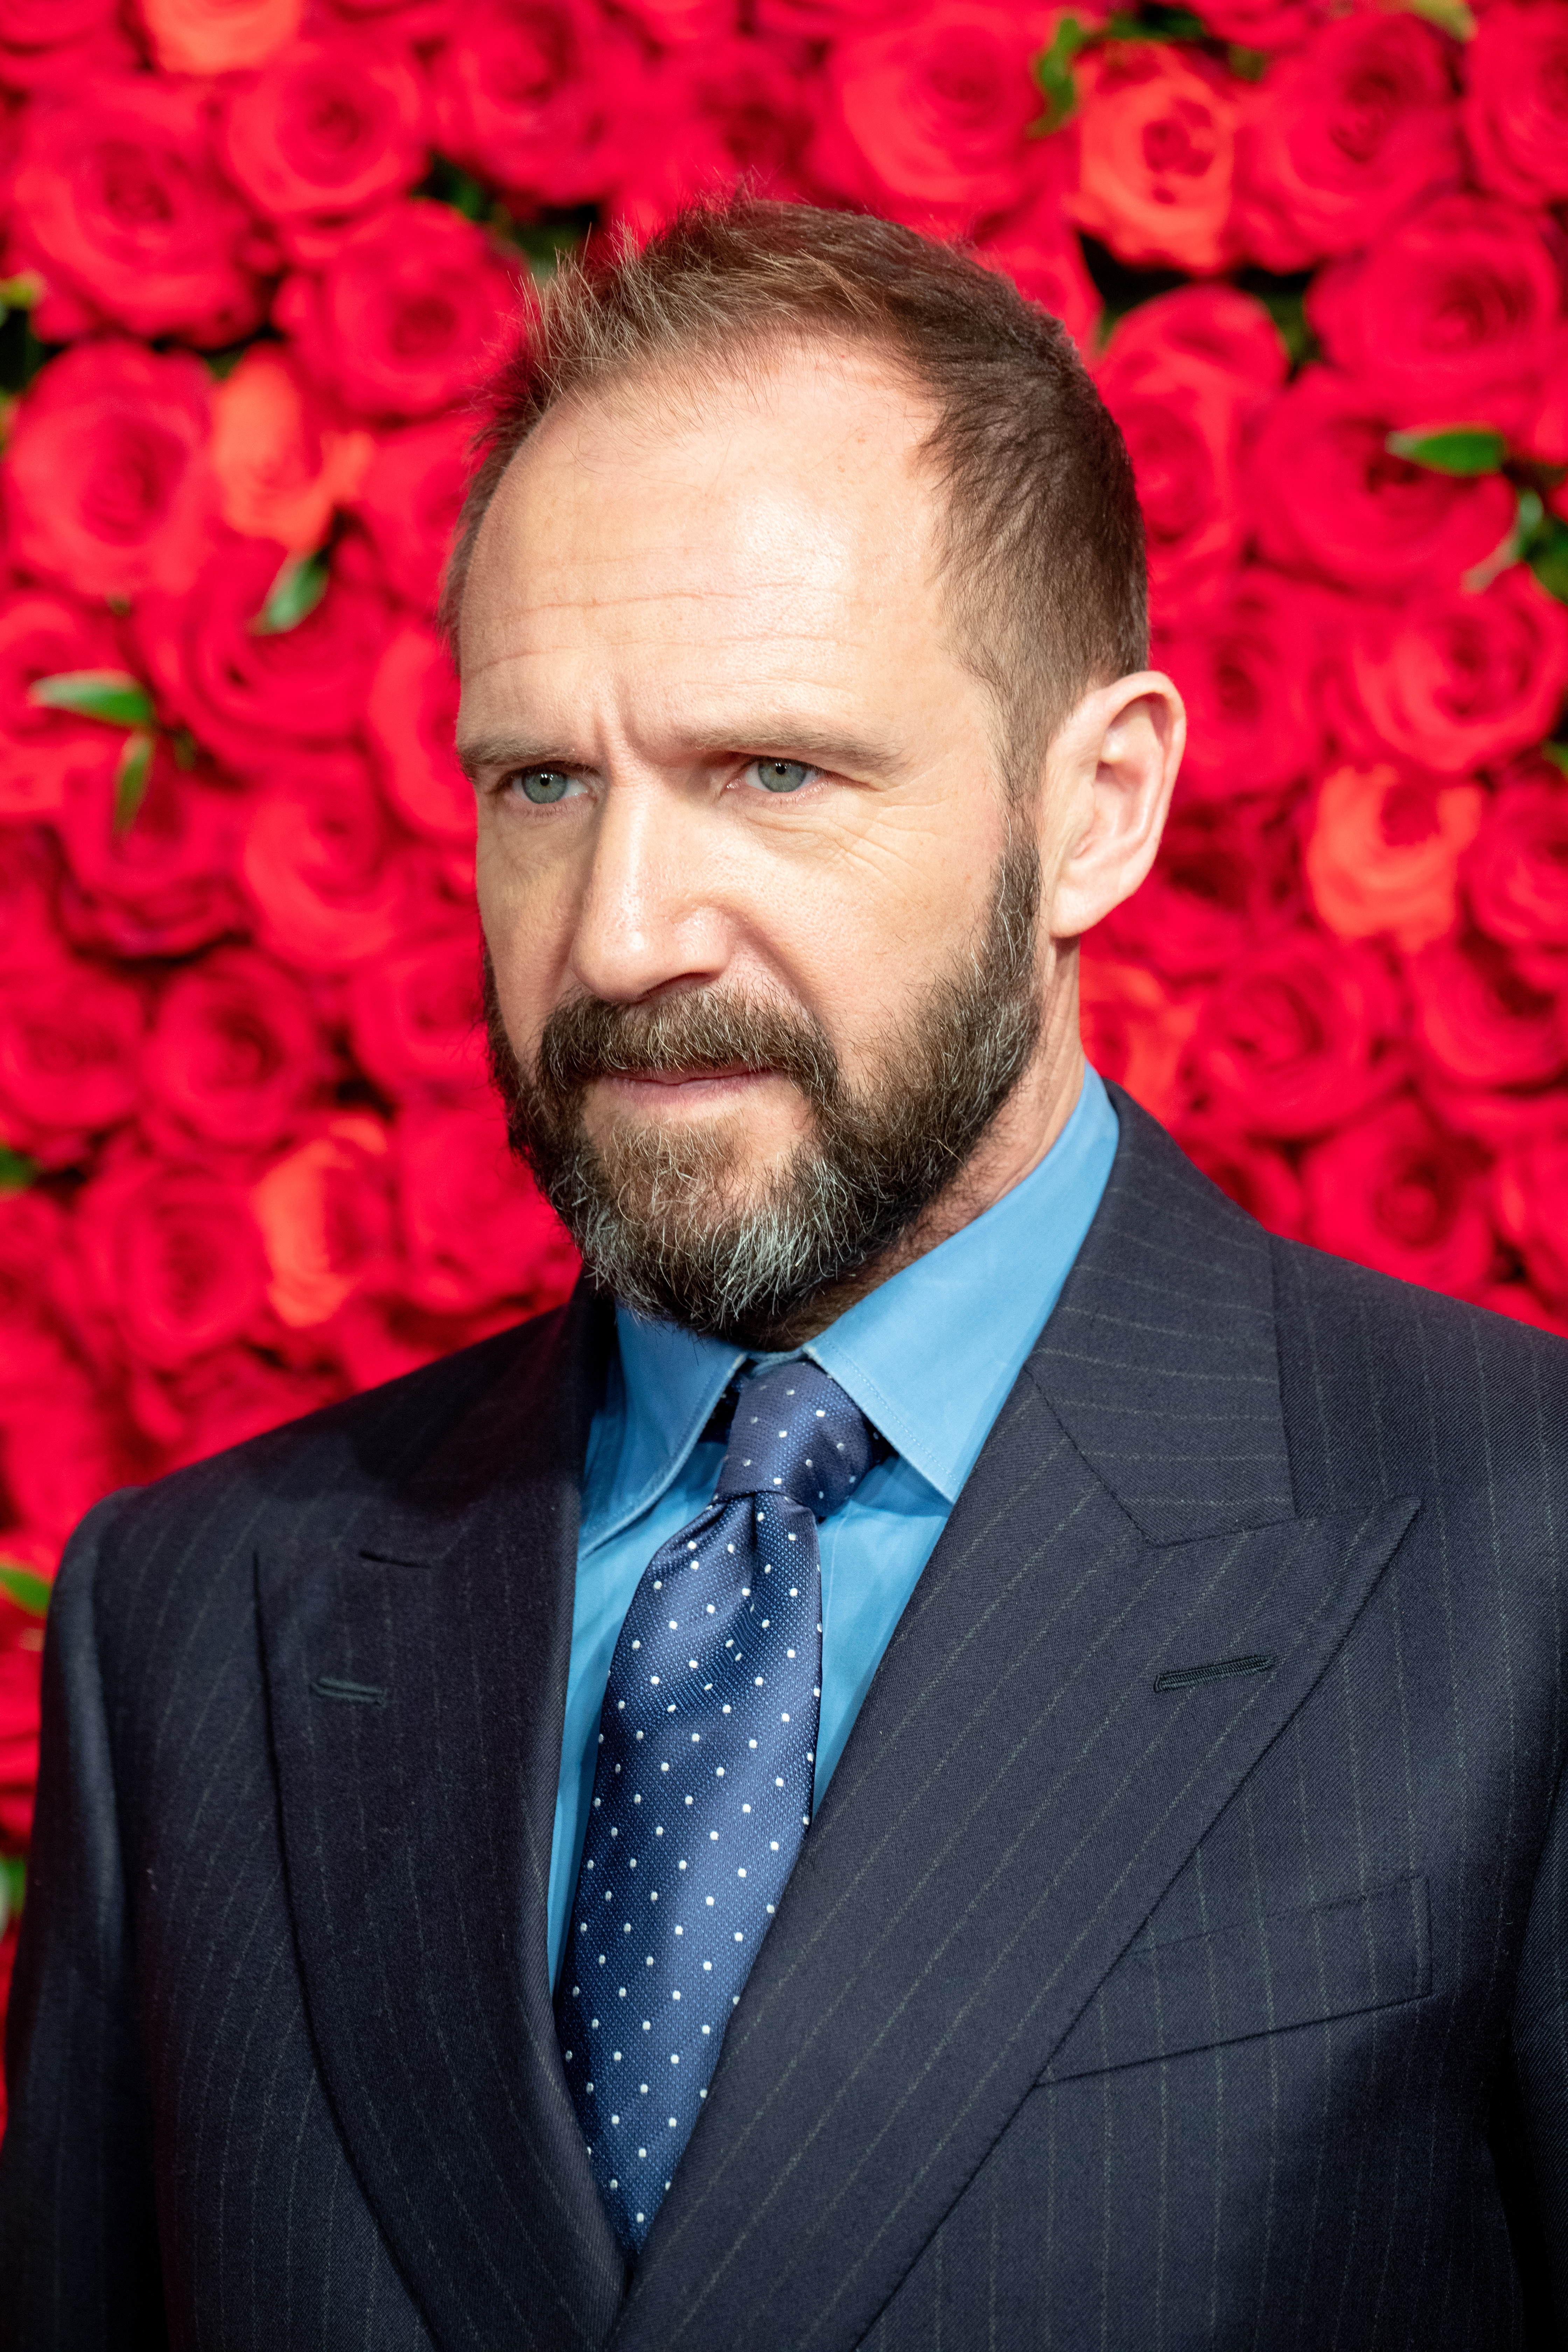 Ralph Fiennes Wikipedia They talk everything corona virus to names they dislike. wikipedia